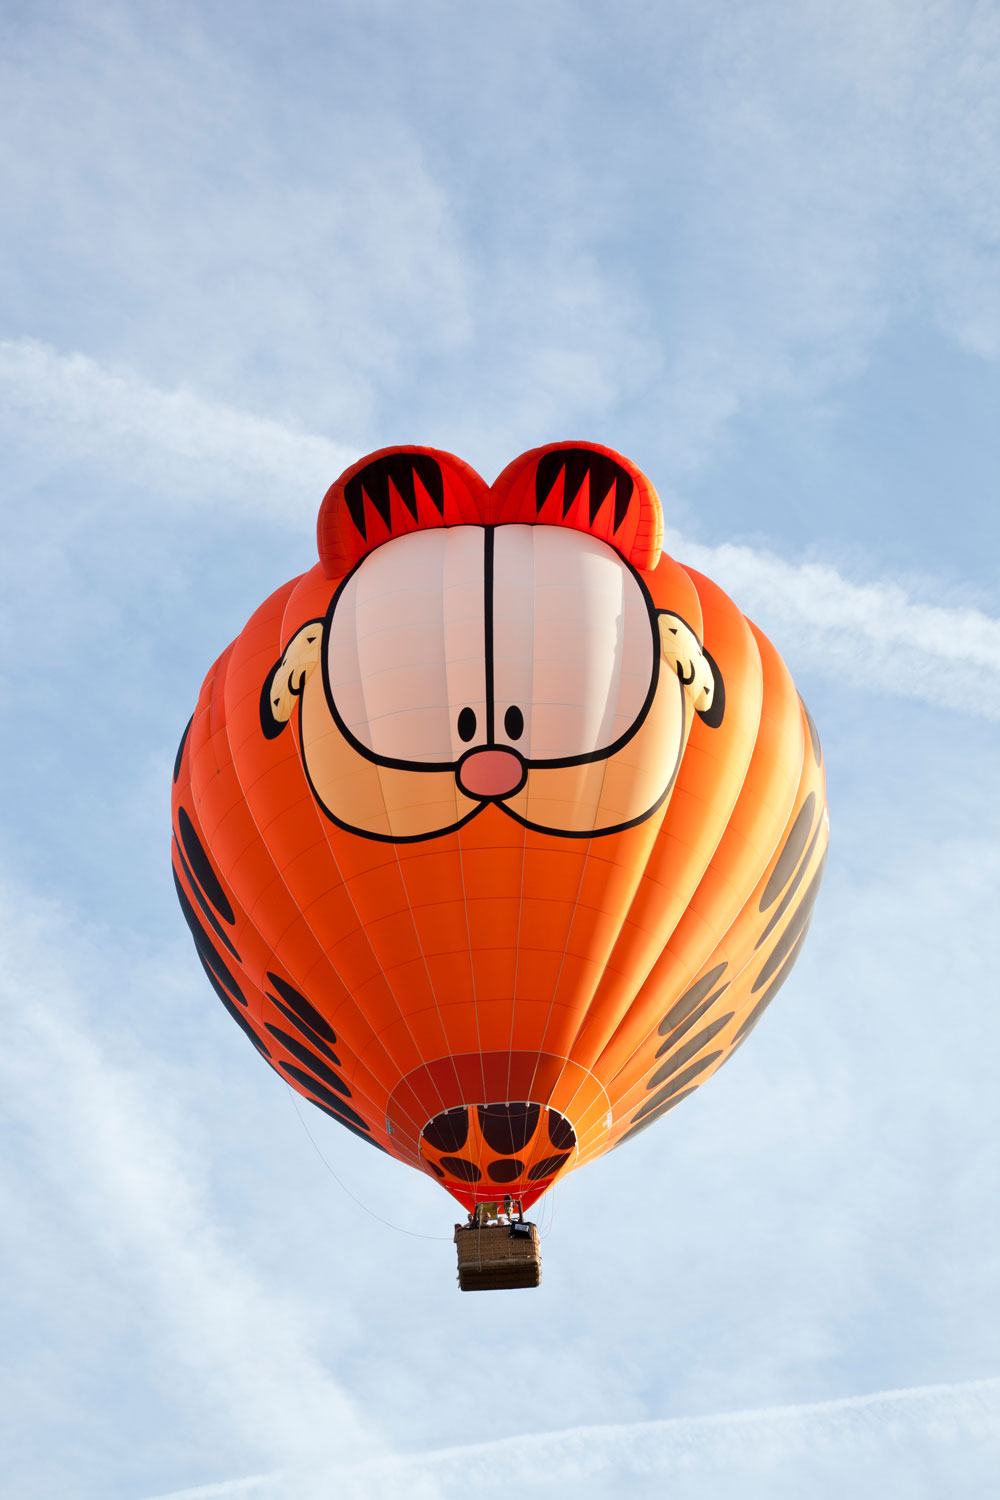 A huge Garfield themed air balloon flying in the sky